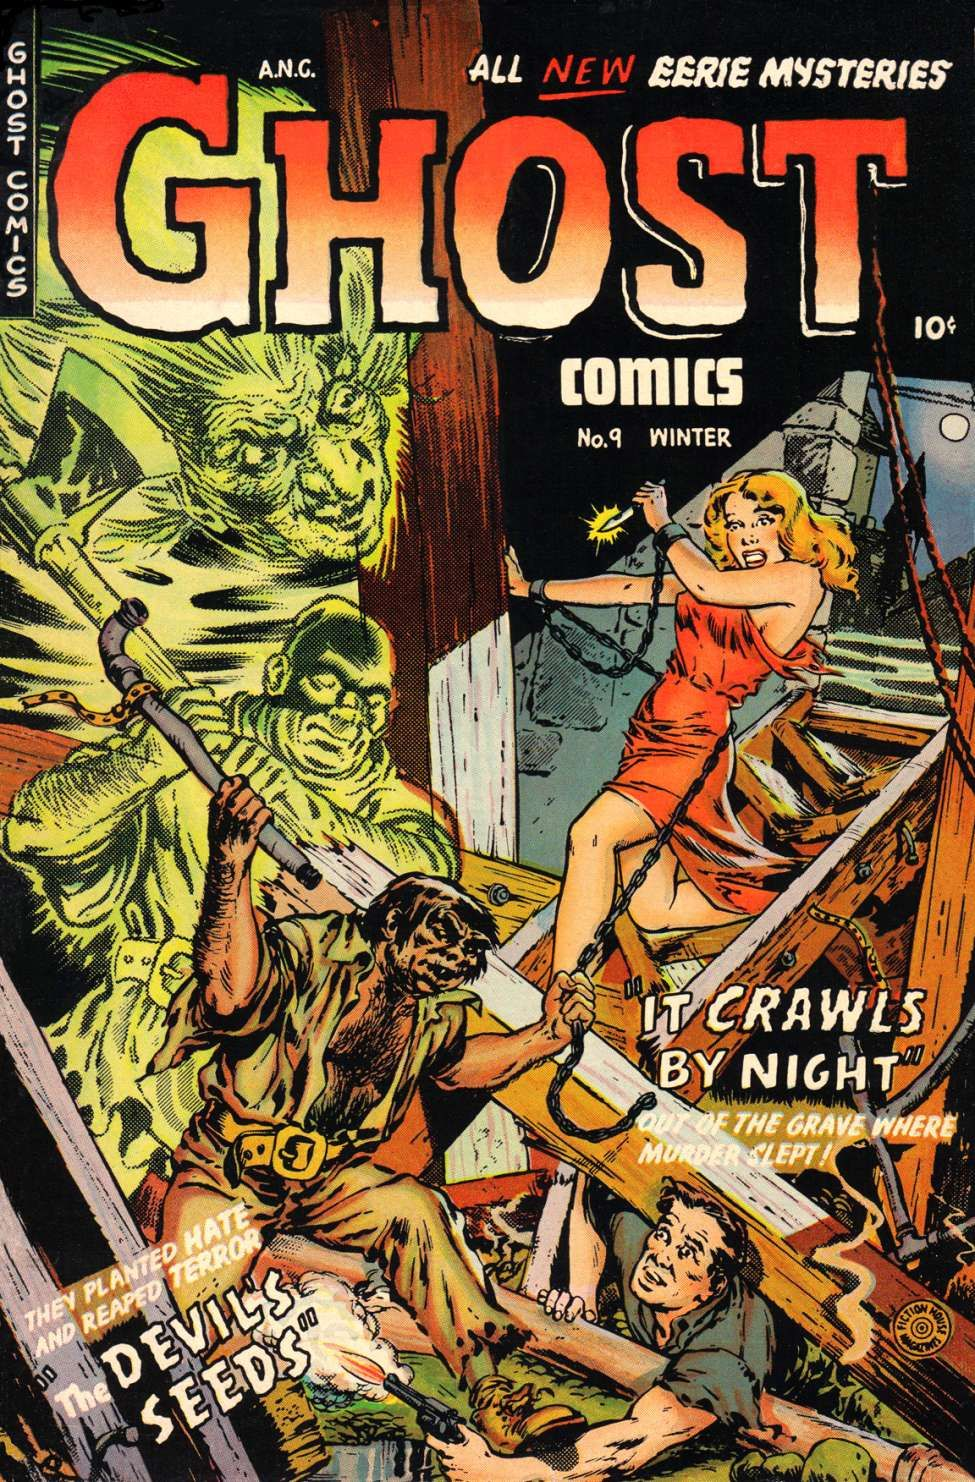 Comic book cover for ghost comics 9 horror comic books for Classic haunted house novels